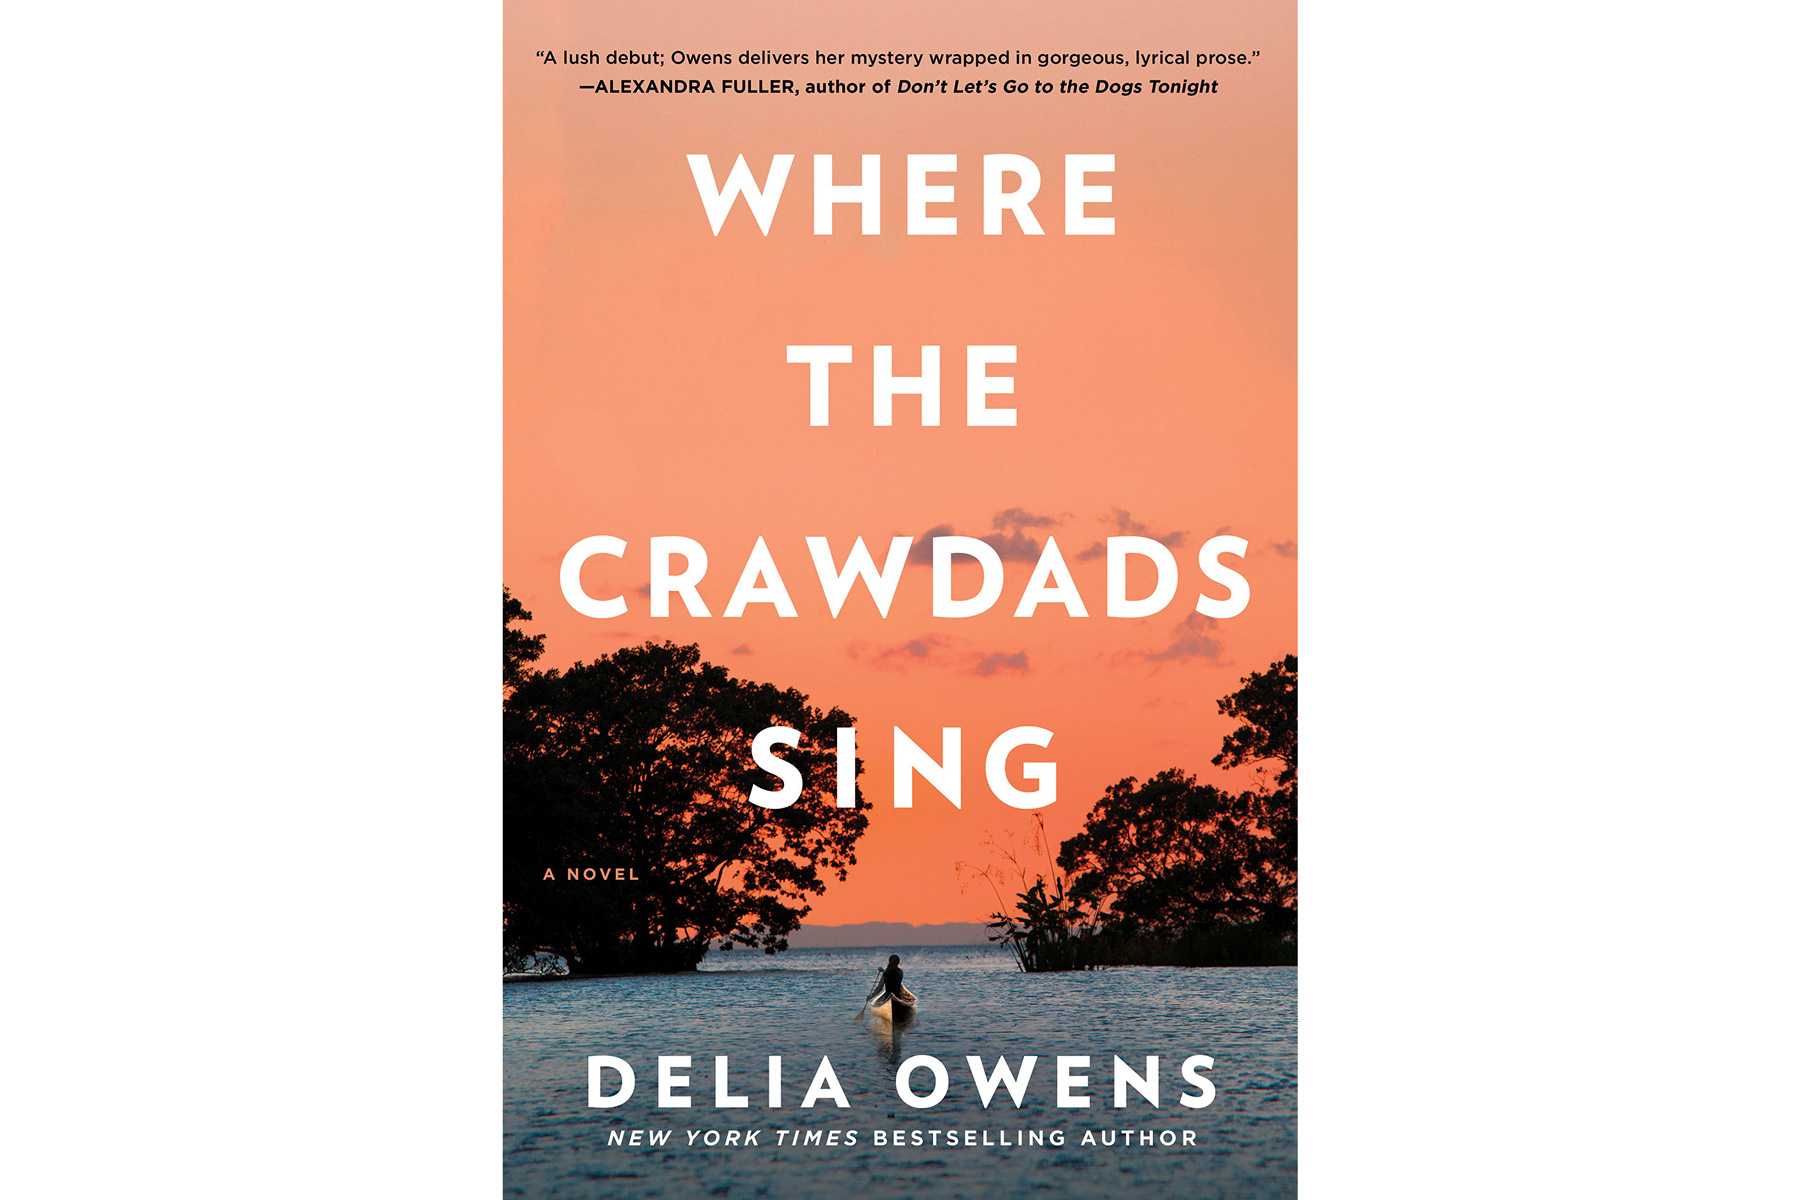 Where the Crawdads Sing, by Delia Owens (Summer Books)